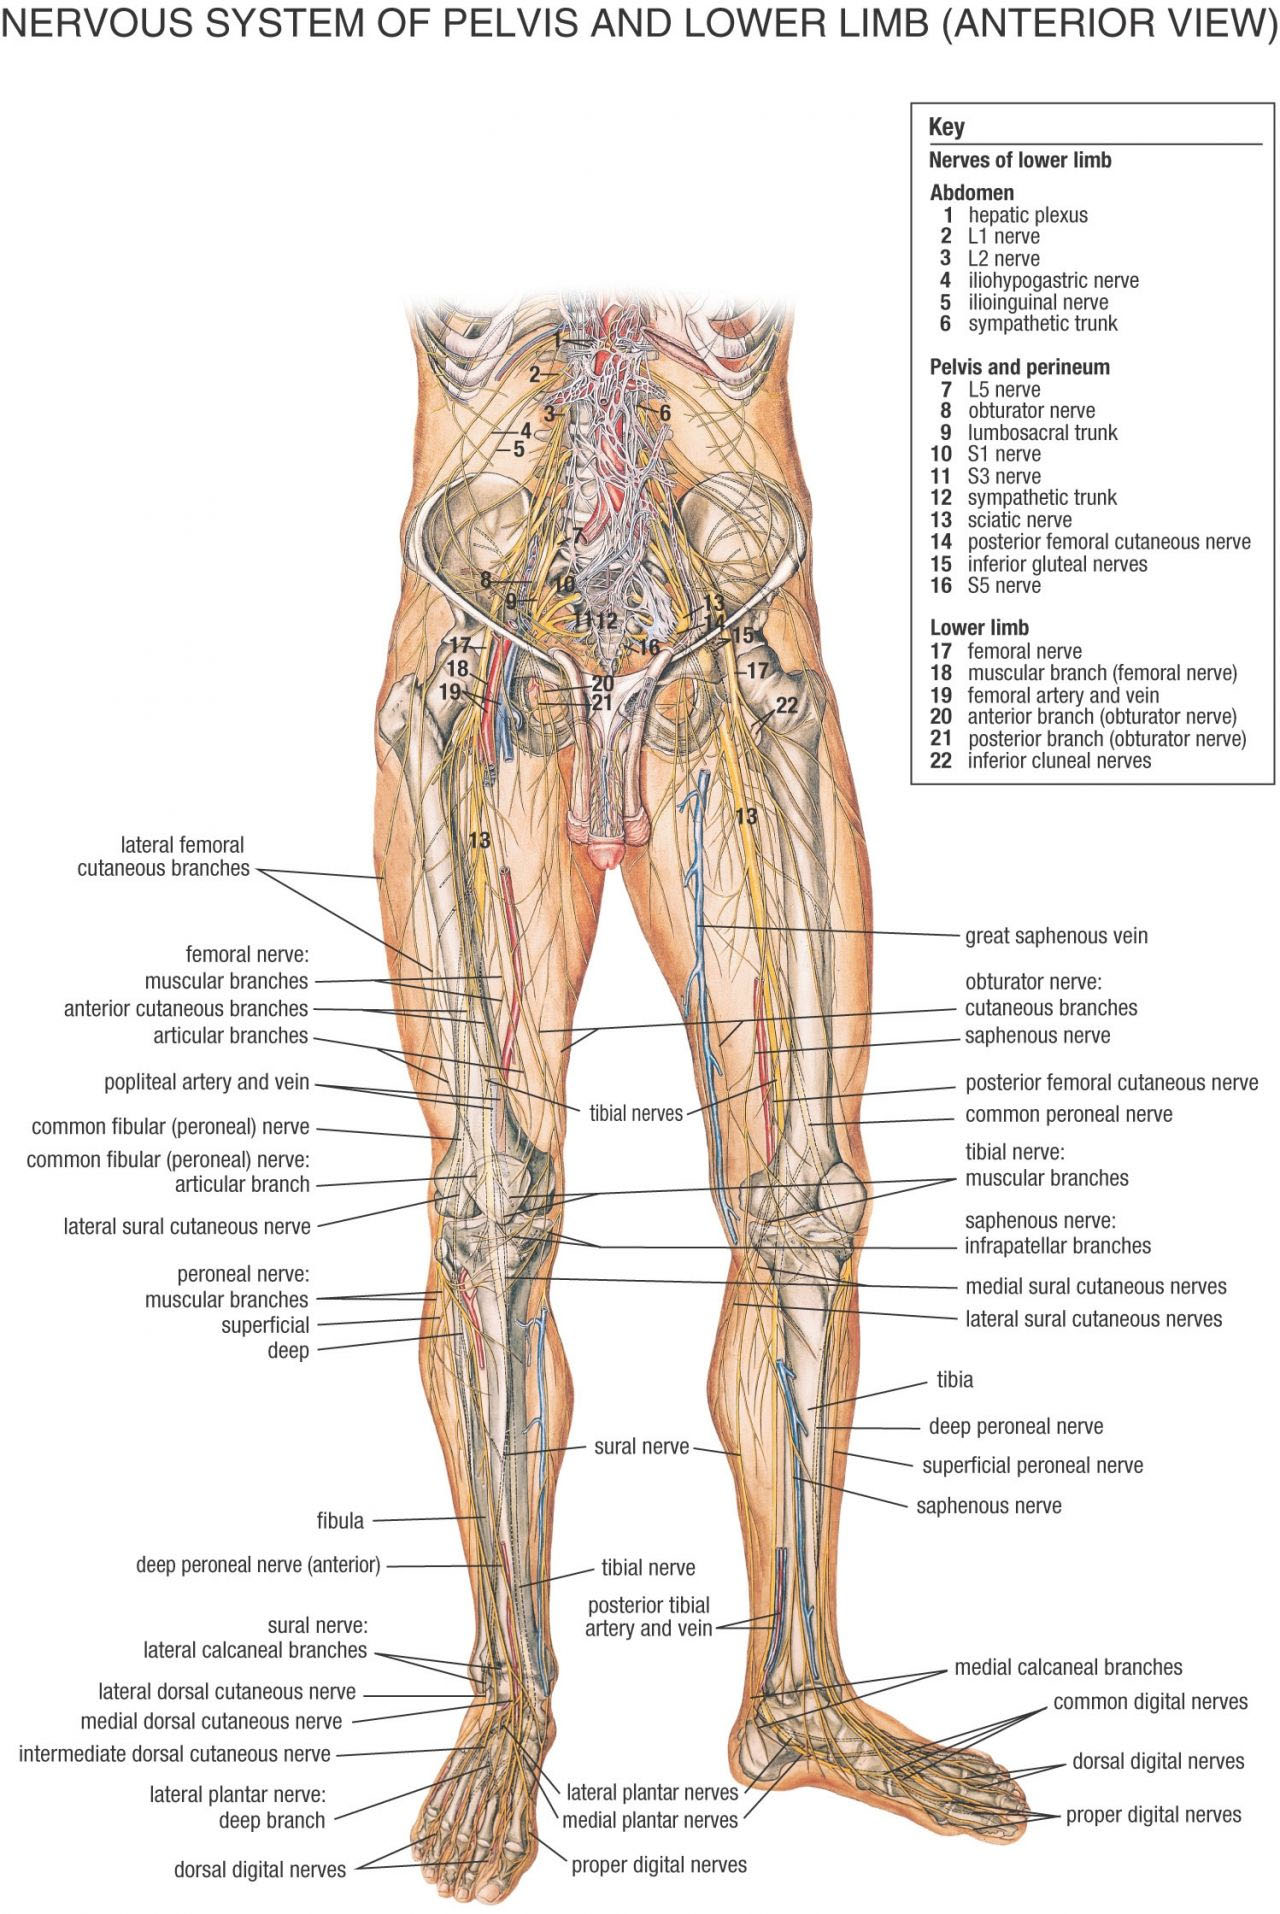 Pelvis And Lower Limb Nervous System In Detail